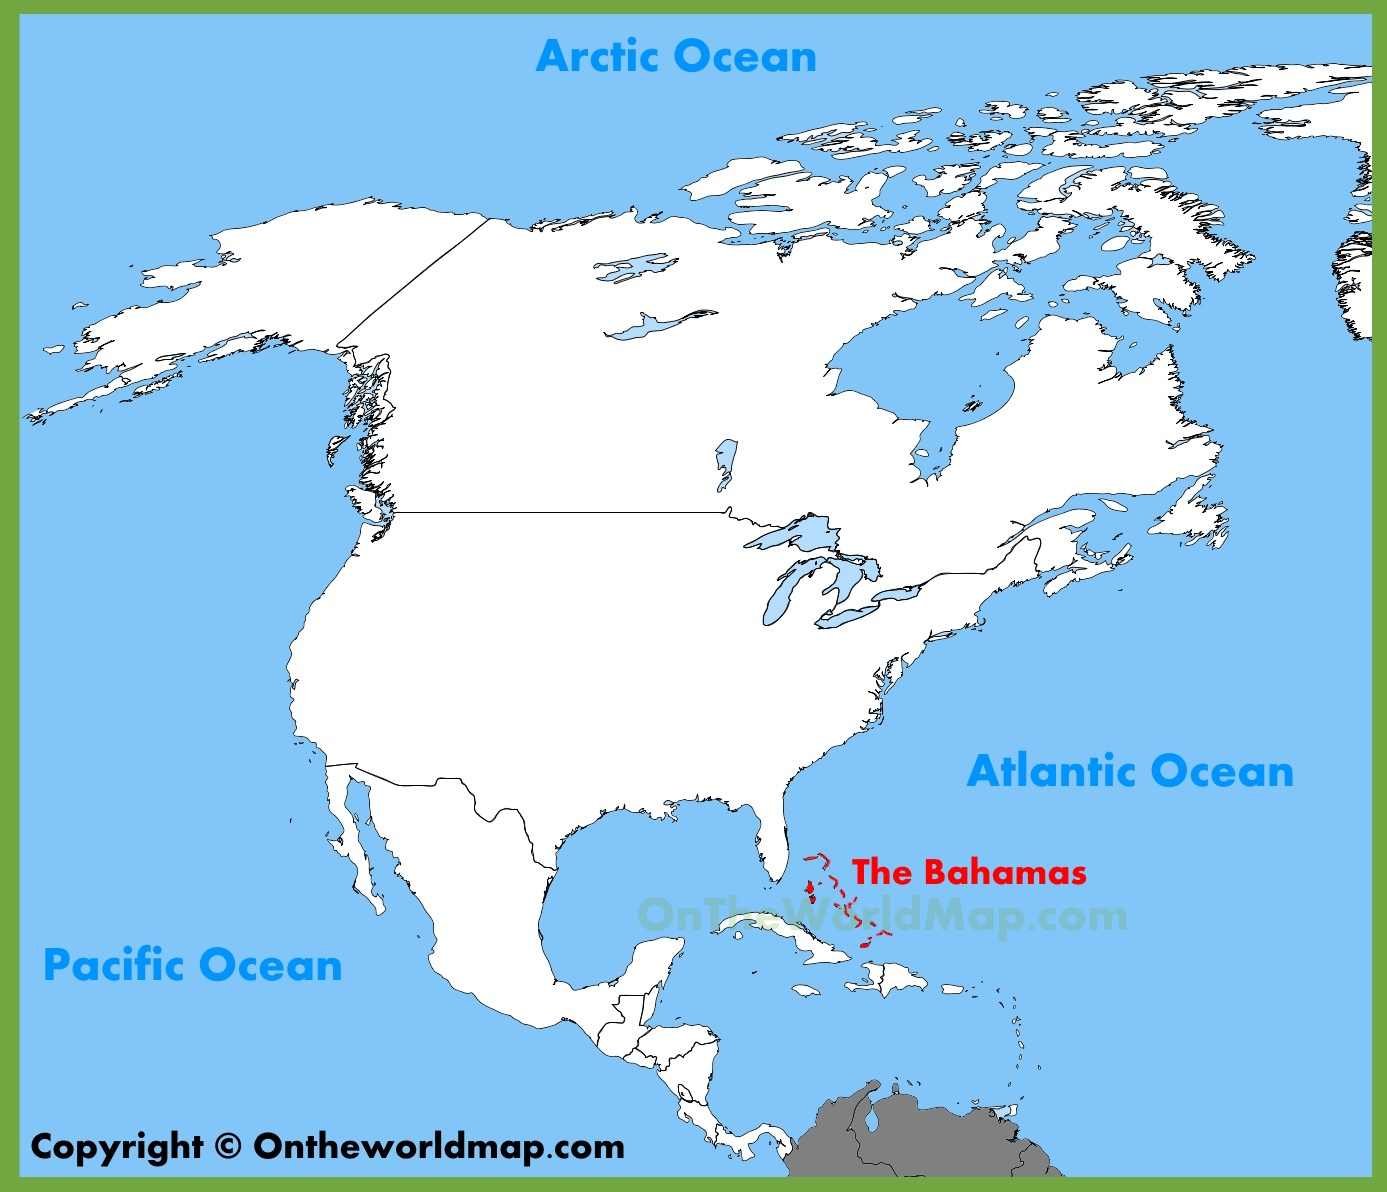 The Bahamas location on the North America map